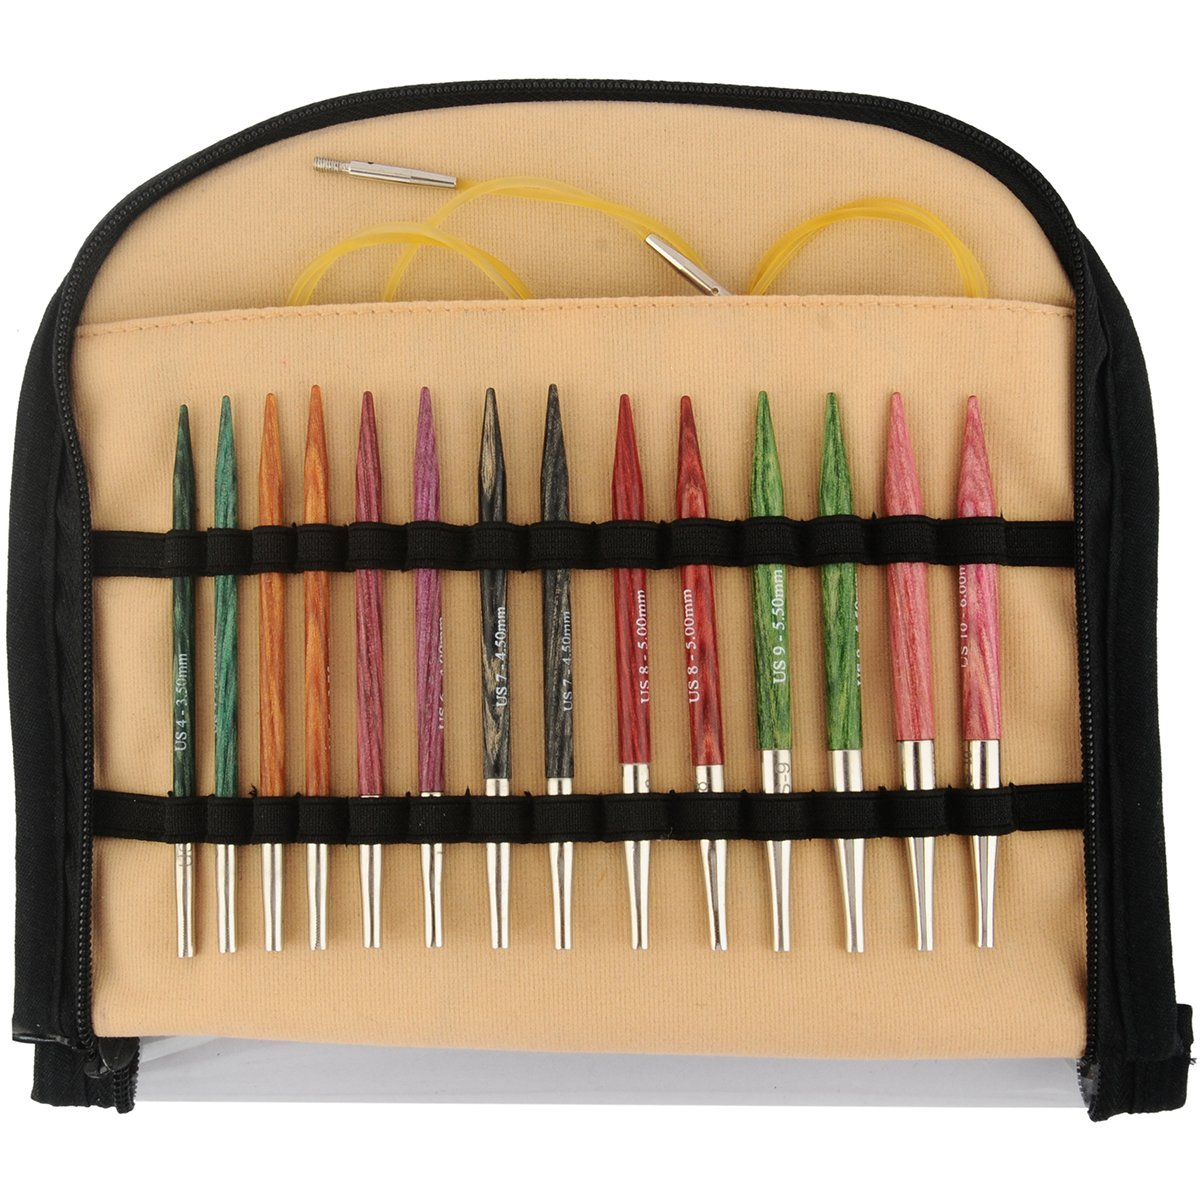 Knitter's Pride KP200608 Dreamz Deluxe Special Interchangeable Needles Set by Knitter's Pride (Image #1)